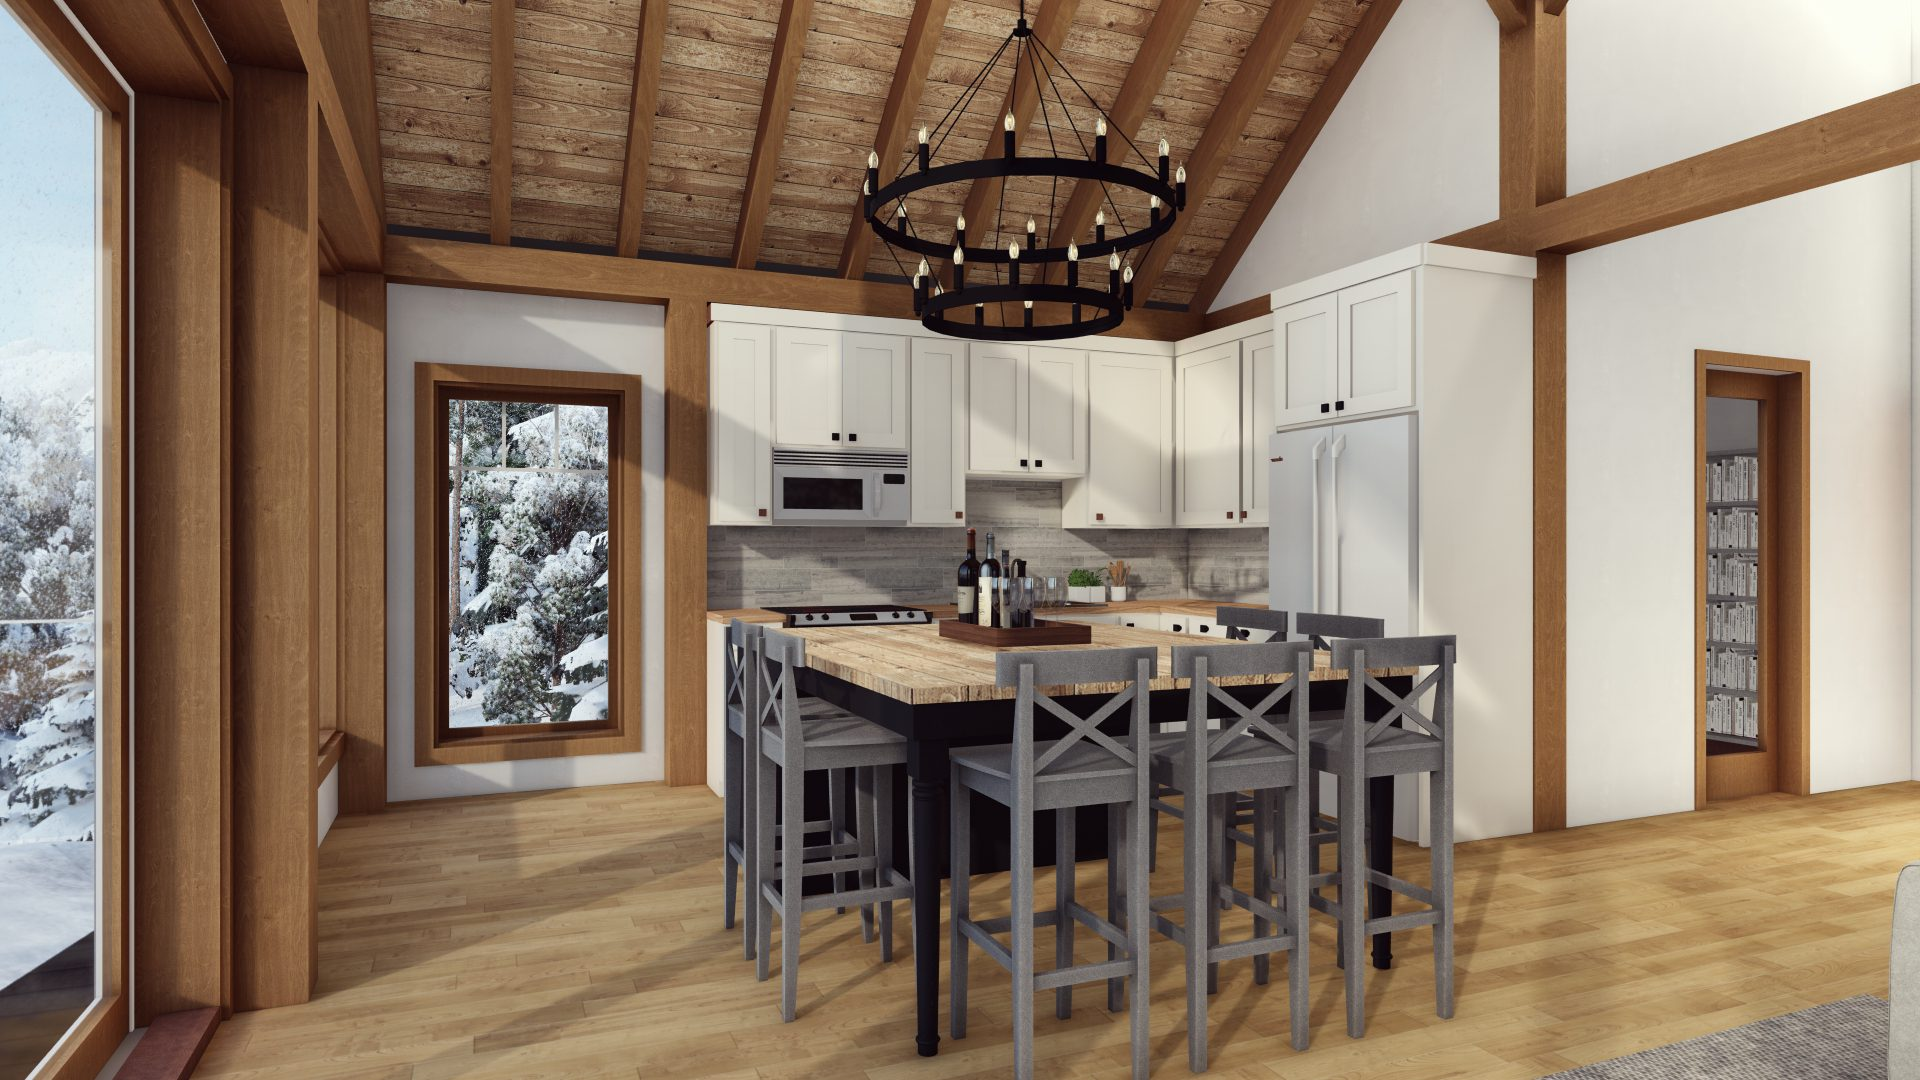 Timber Frame Open Concept House Plans   The Rouge   Normerica   Interior, Dining Room, Kitchen